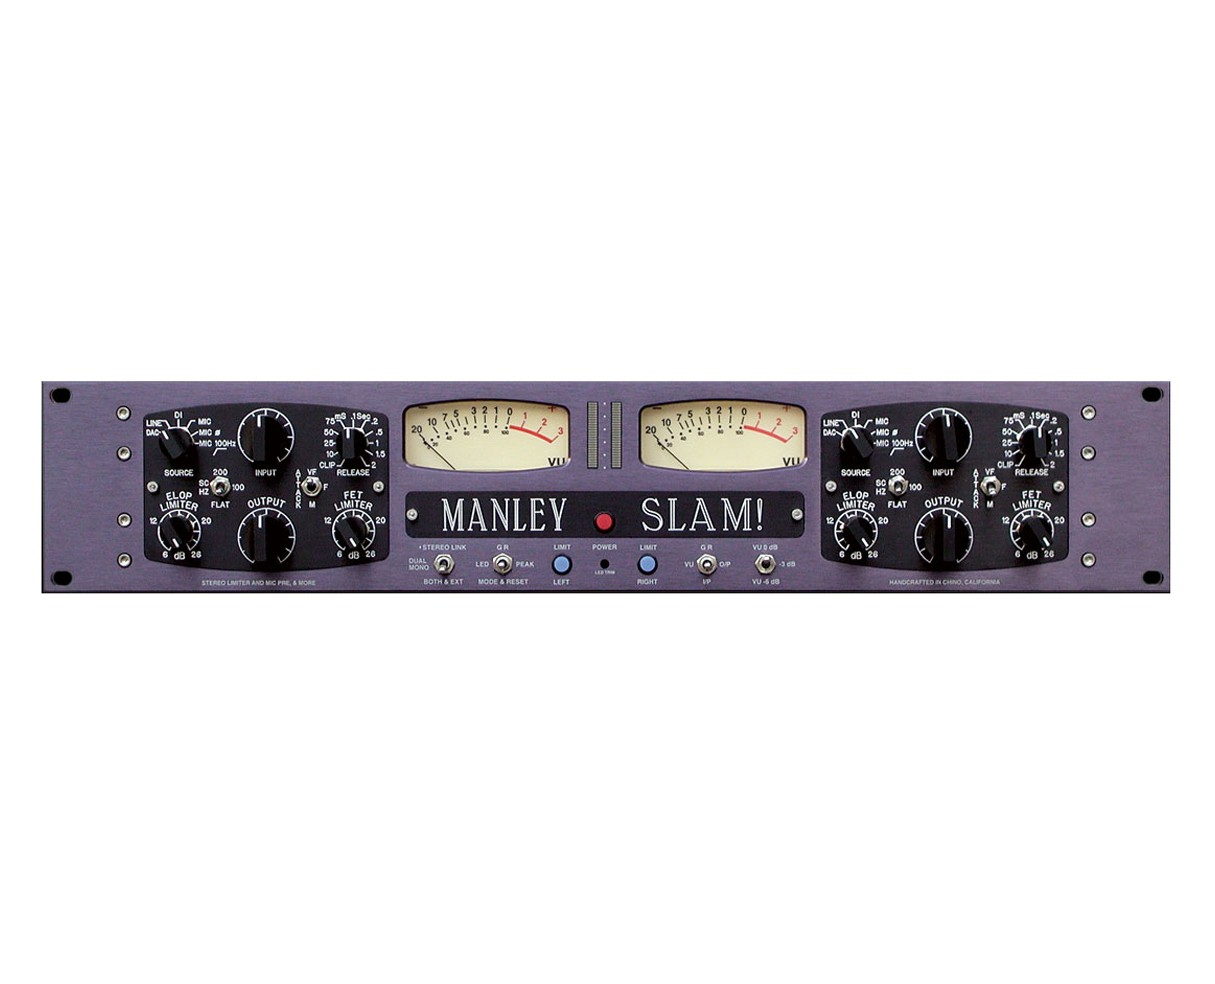 Manley Slam Microphone Preamplifier two channel 2 ch mic preamp pre compressor limiter MSLAM face front panel